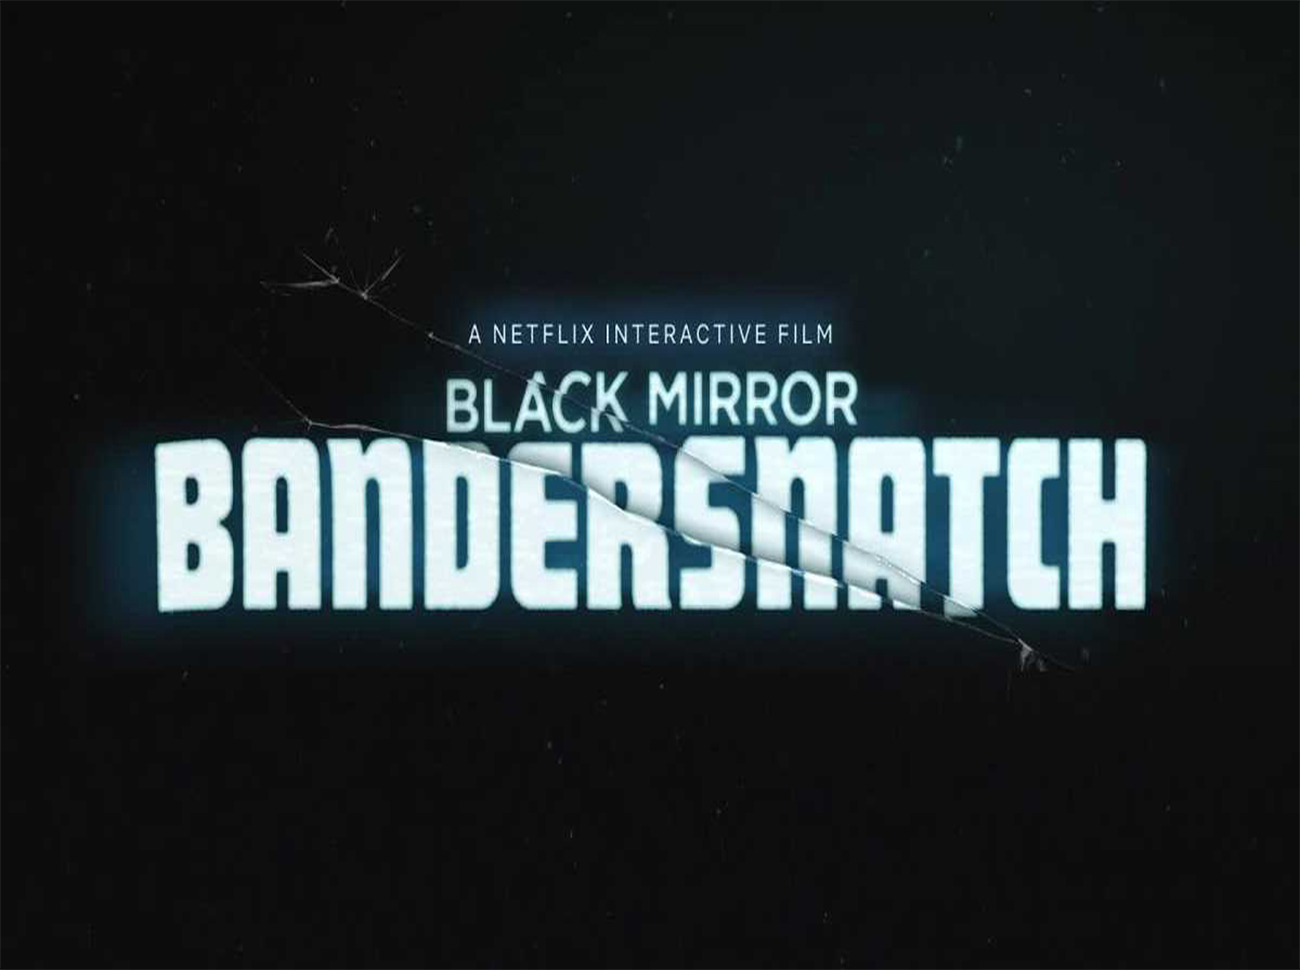 5 Saatlik İnteraktif Film Black Mirror: Bandersnatch